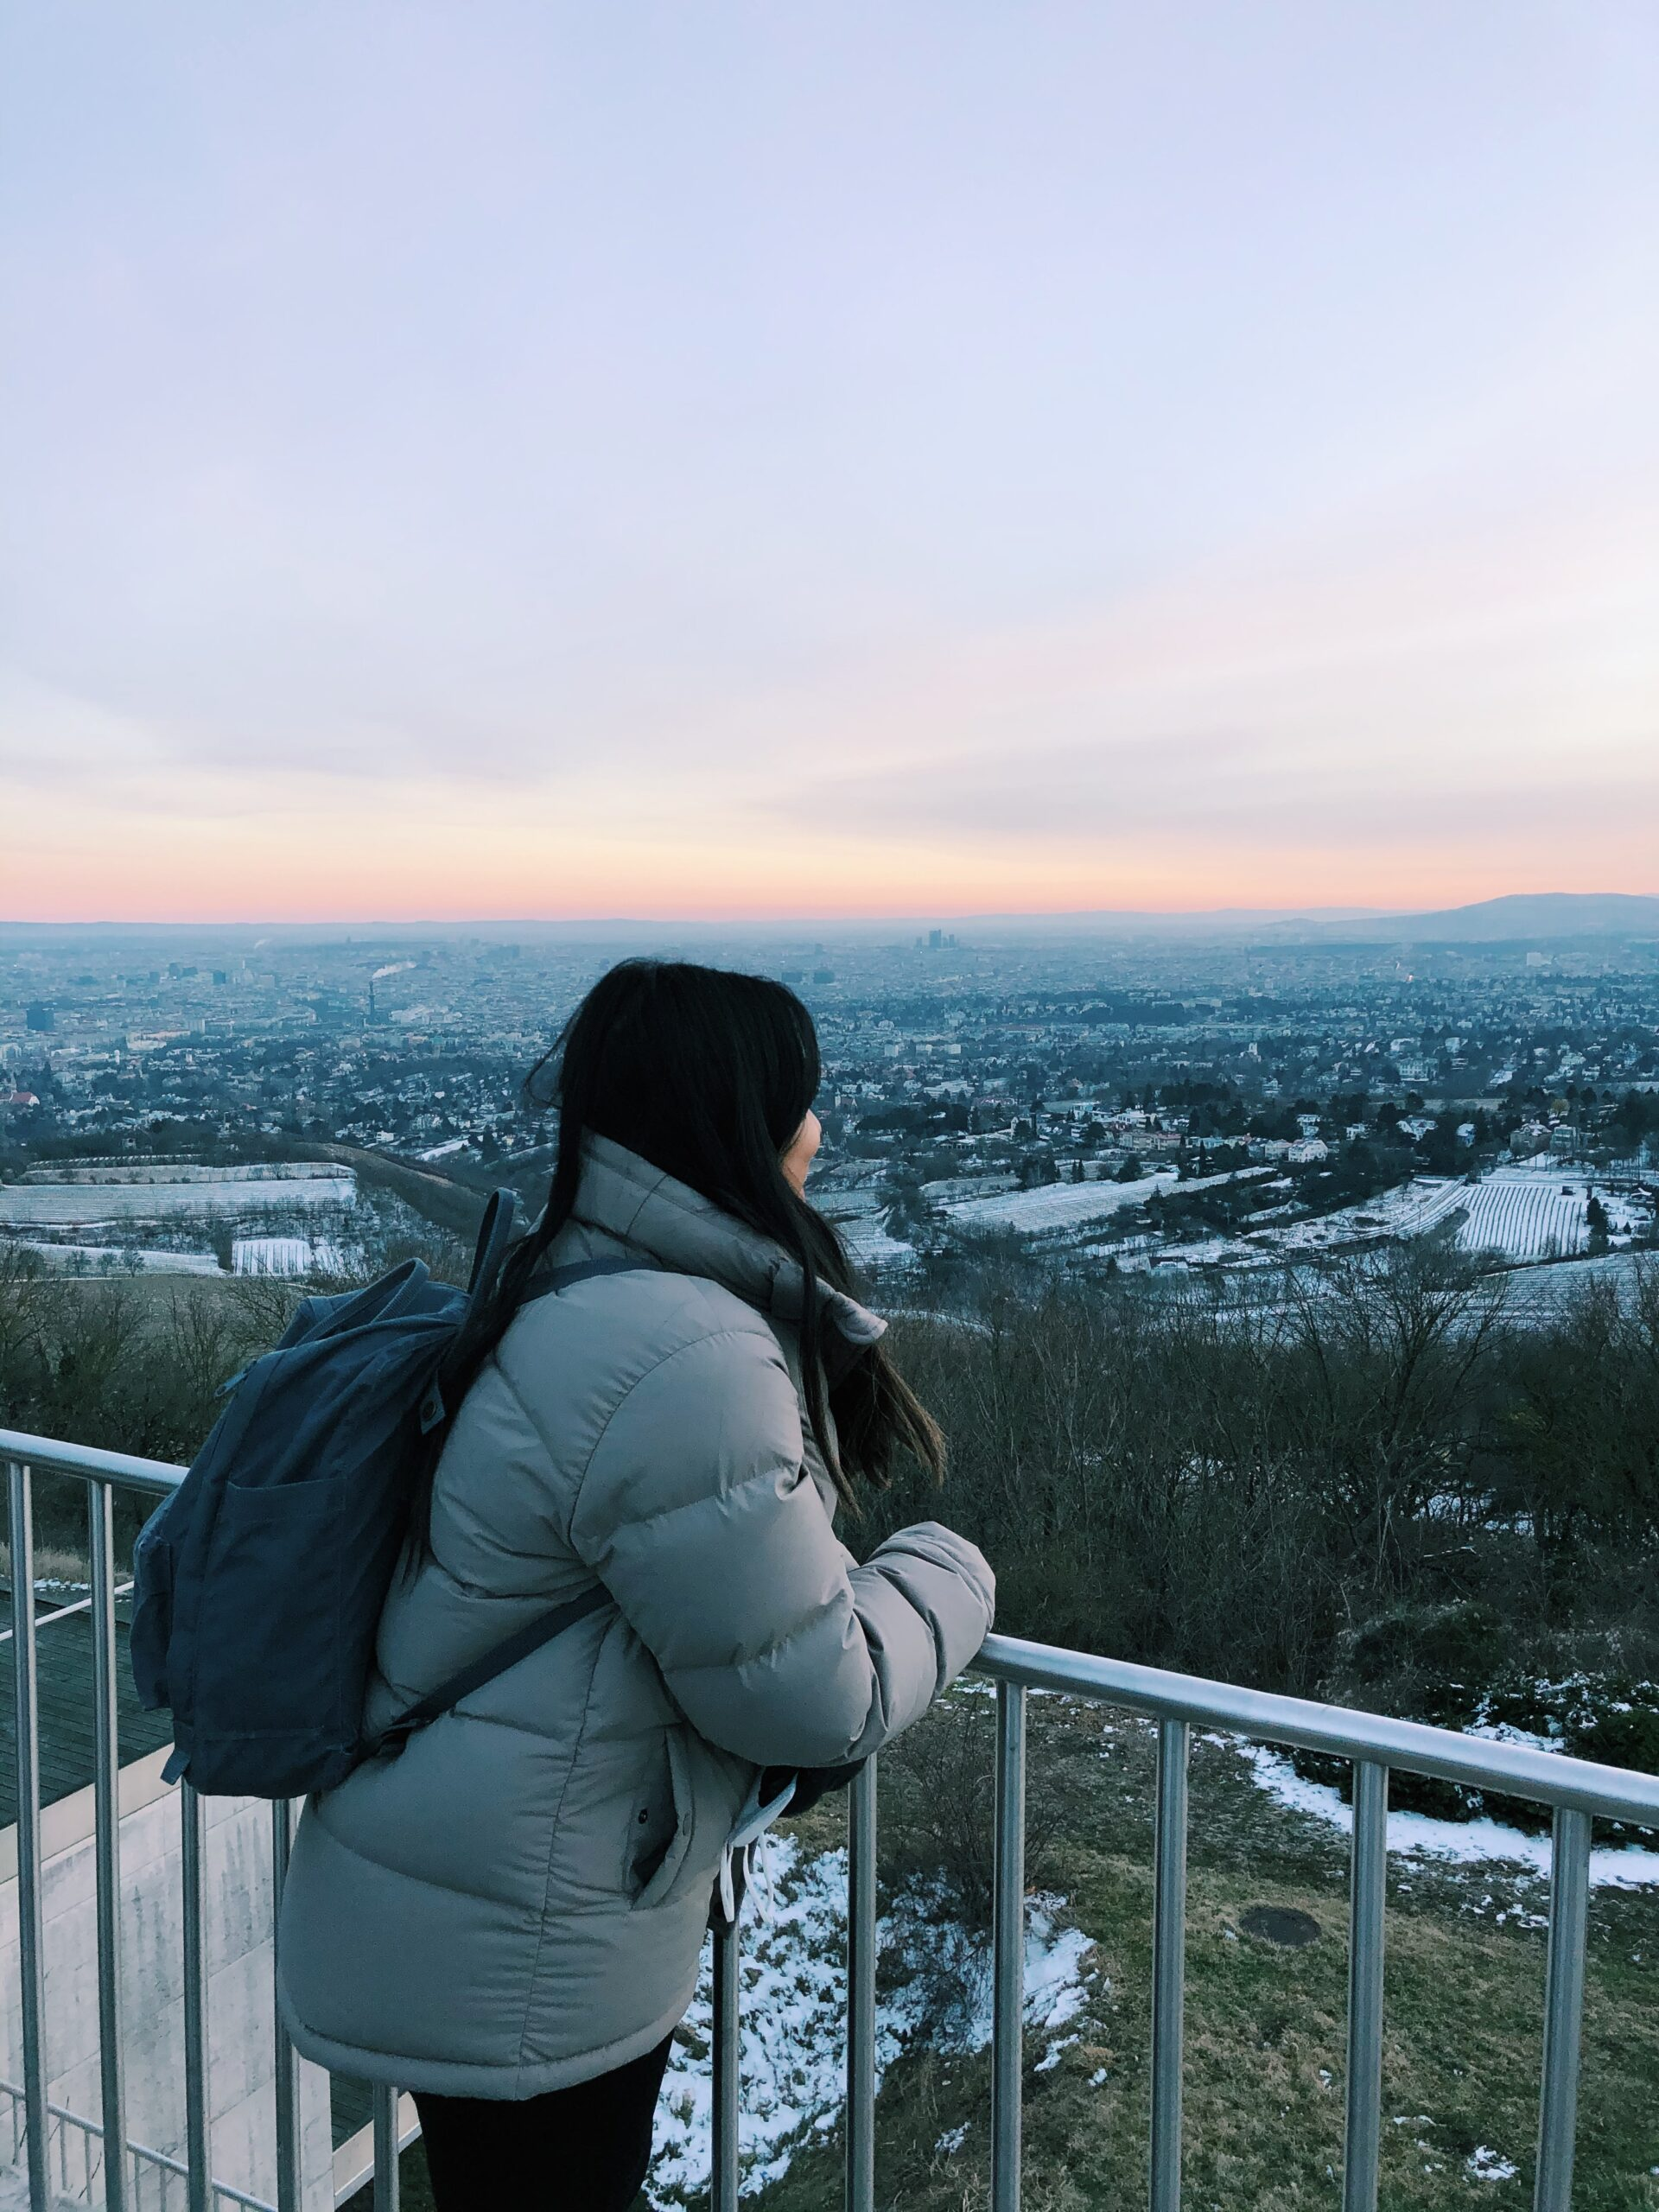 woman stands at railing overlooking city at sunset